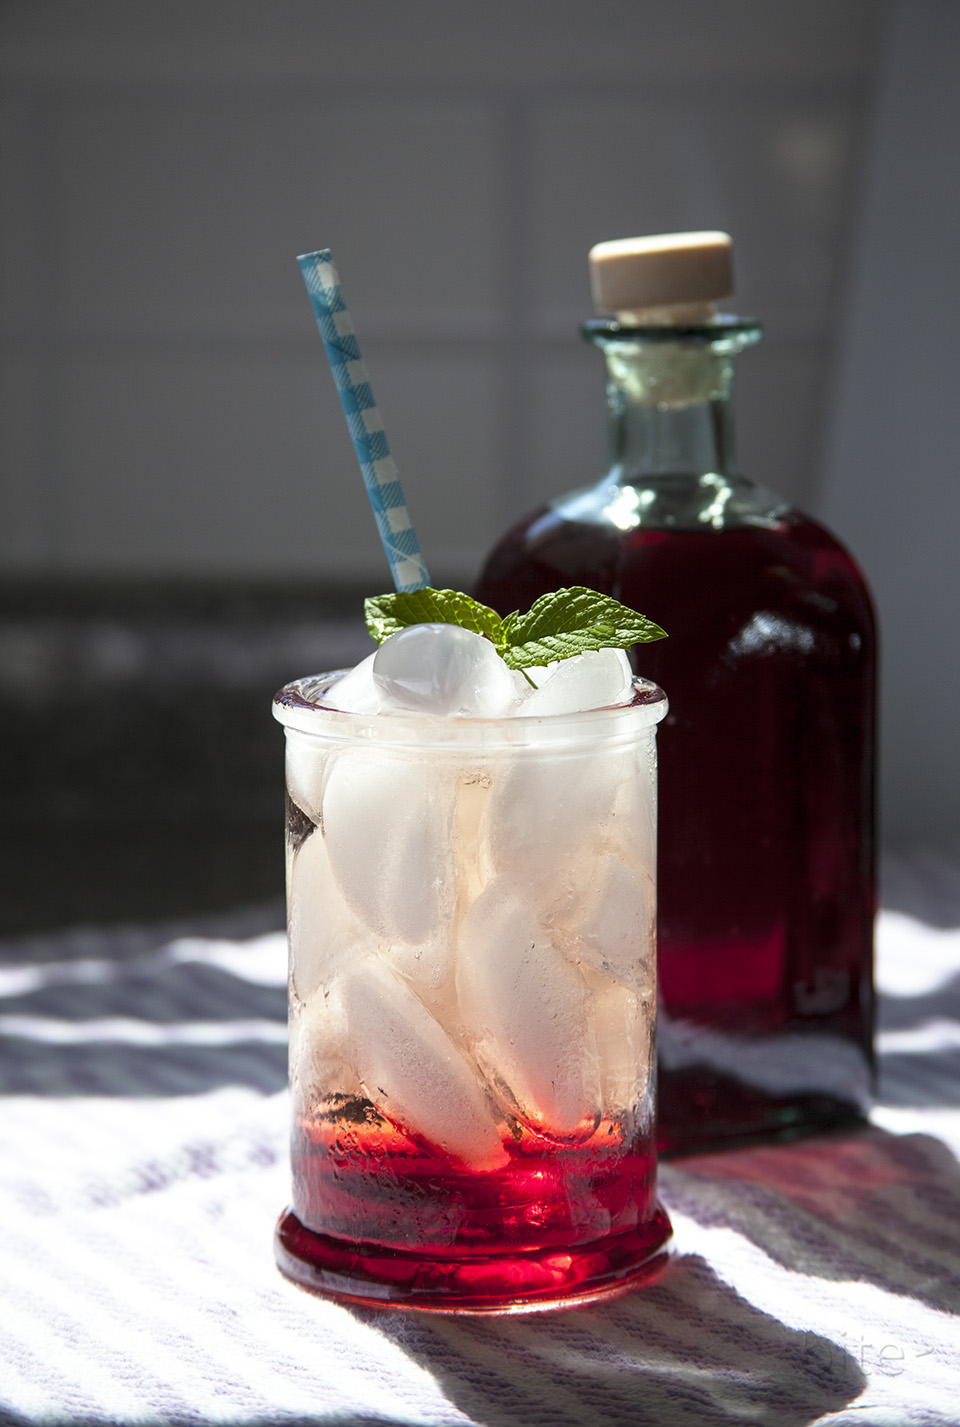 Blackberry Shrub